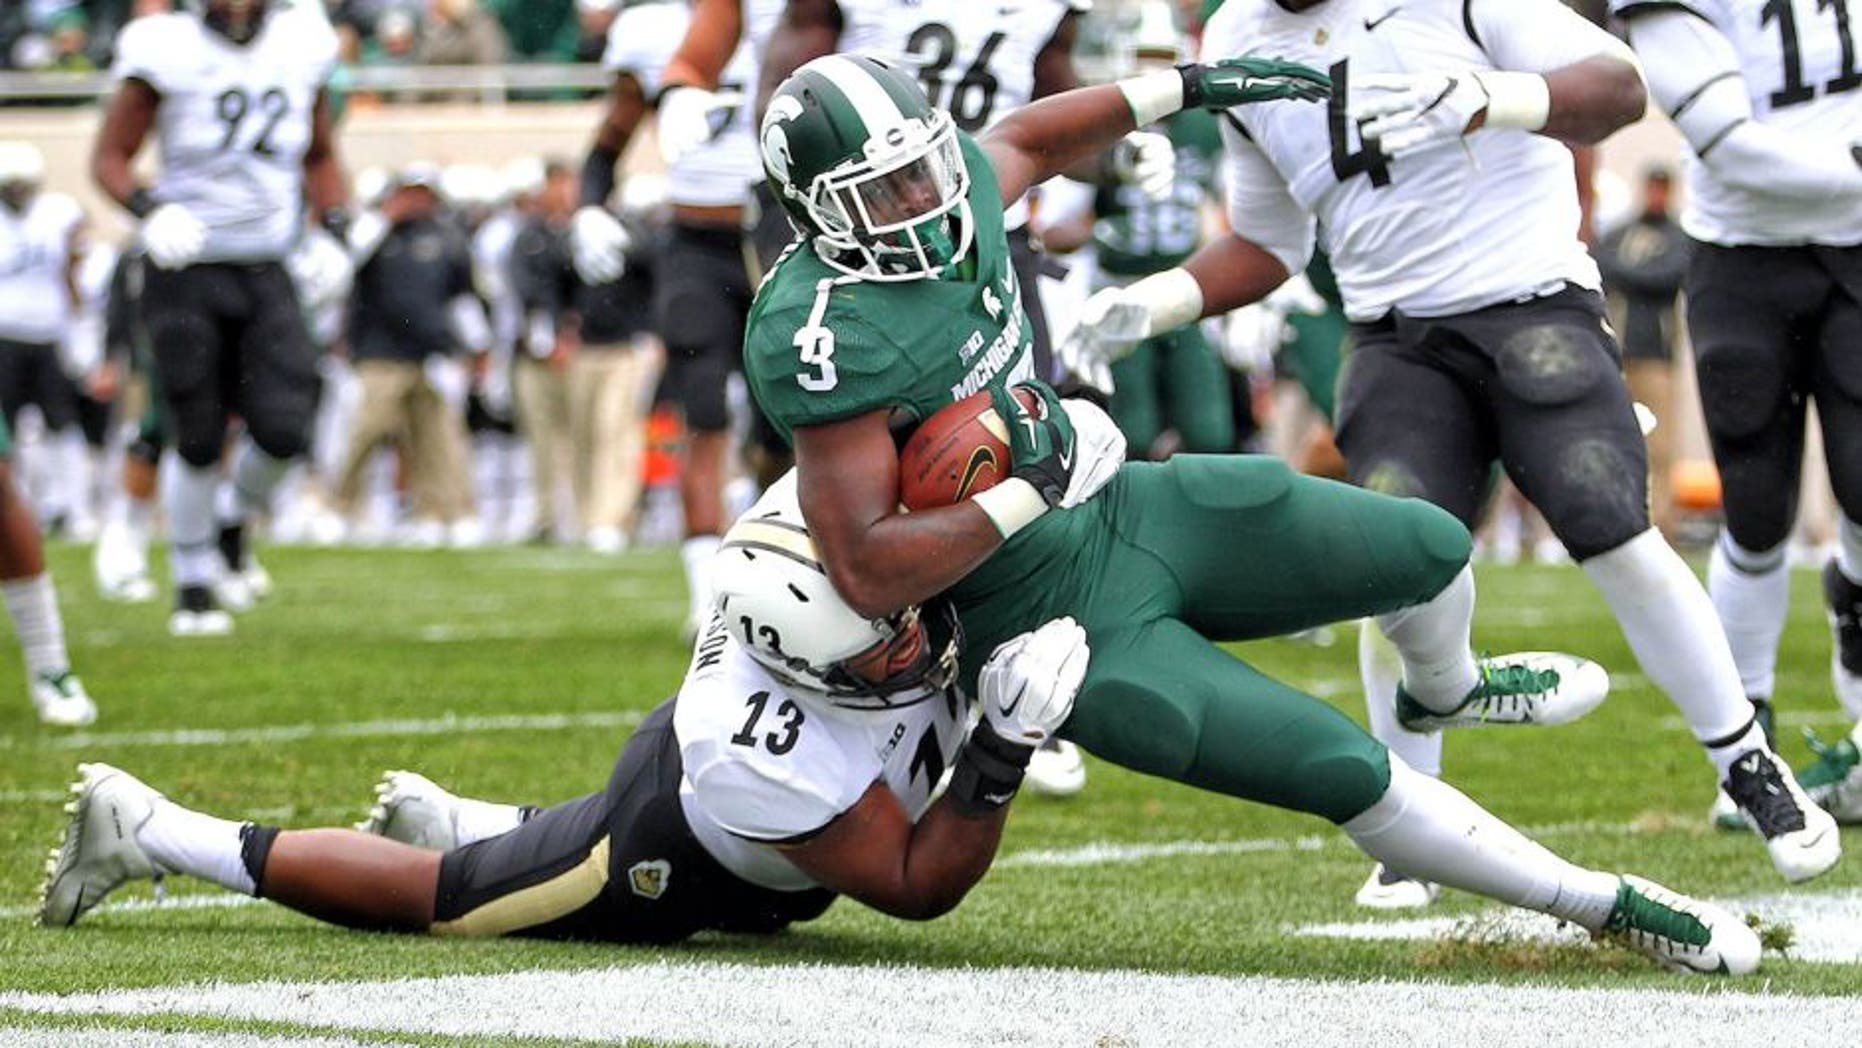 Oct 3, 2015; East Lansing, MI, USA; Michigan State Spartans running back LJ Scott (3) scores a touchdown against Purdue Boilermakers defensive end Gelen Robinson (13) during the 1st quarter of a game at Spartan Stadium. Mandatory Credit: Mike Carter-USA TODAY Sports